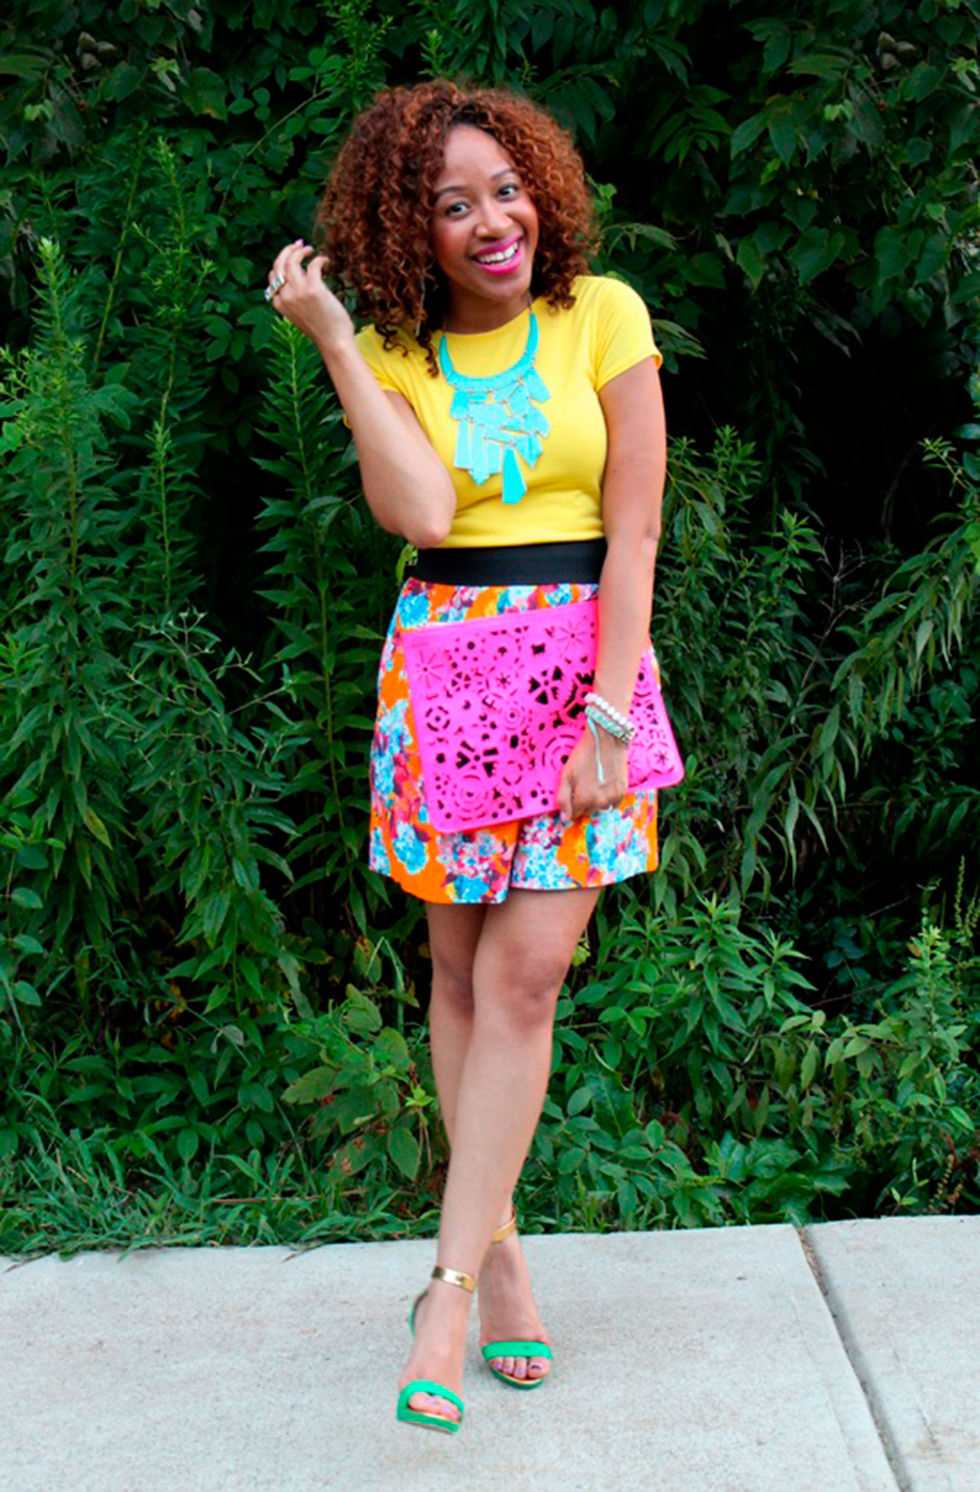 neon-outfit-ideas-7